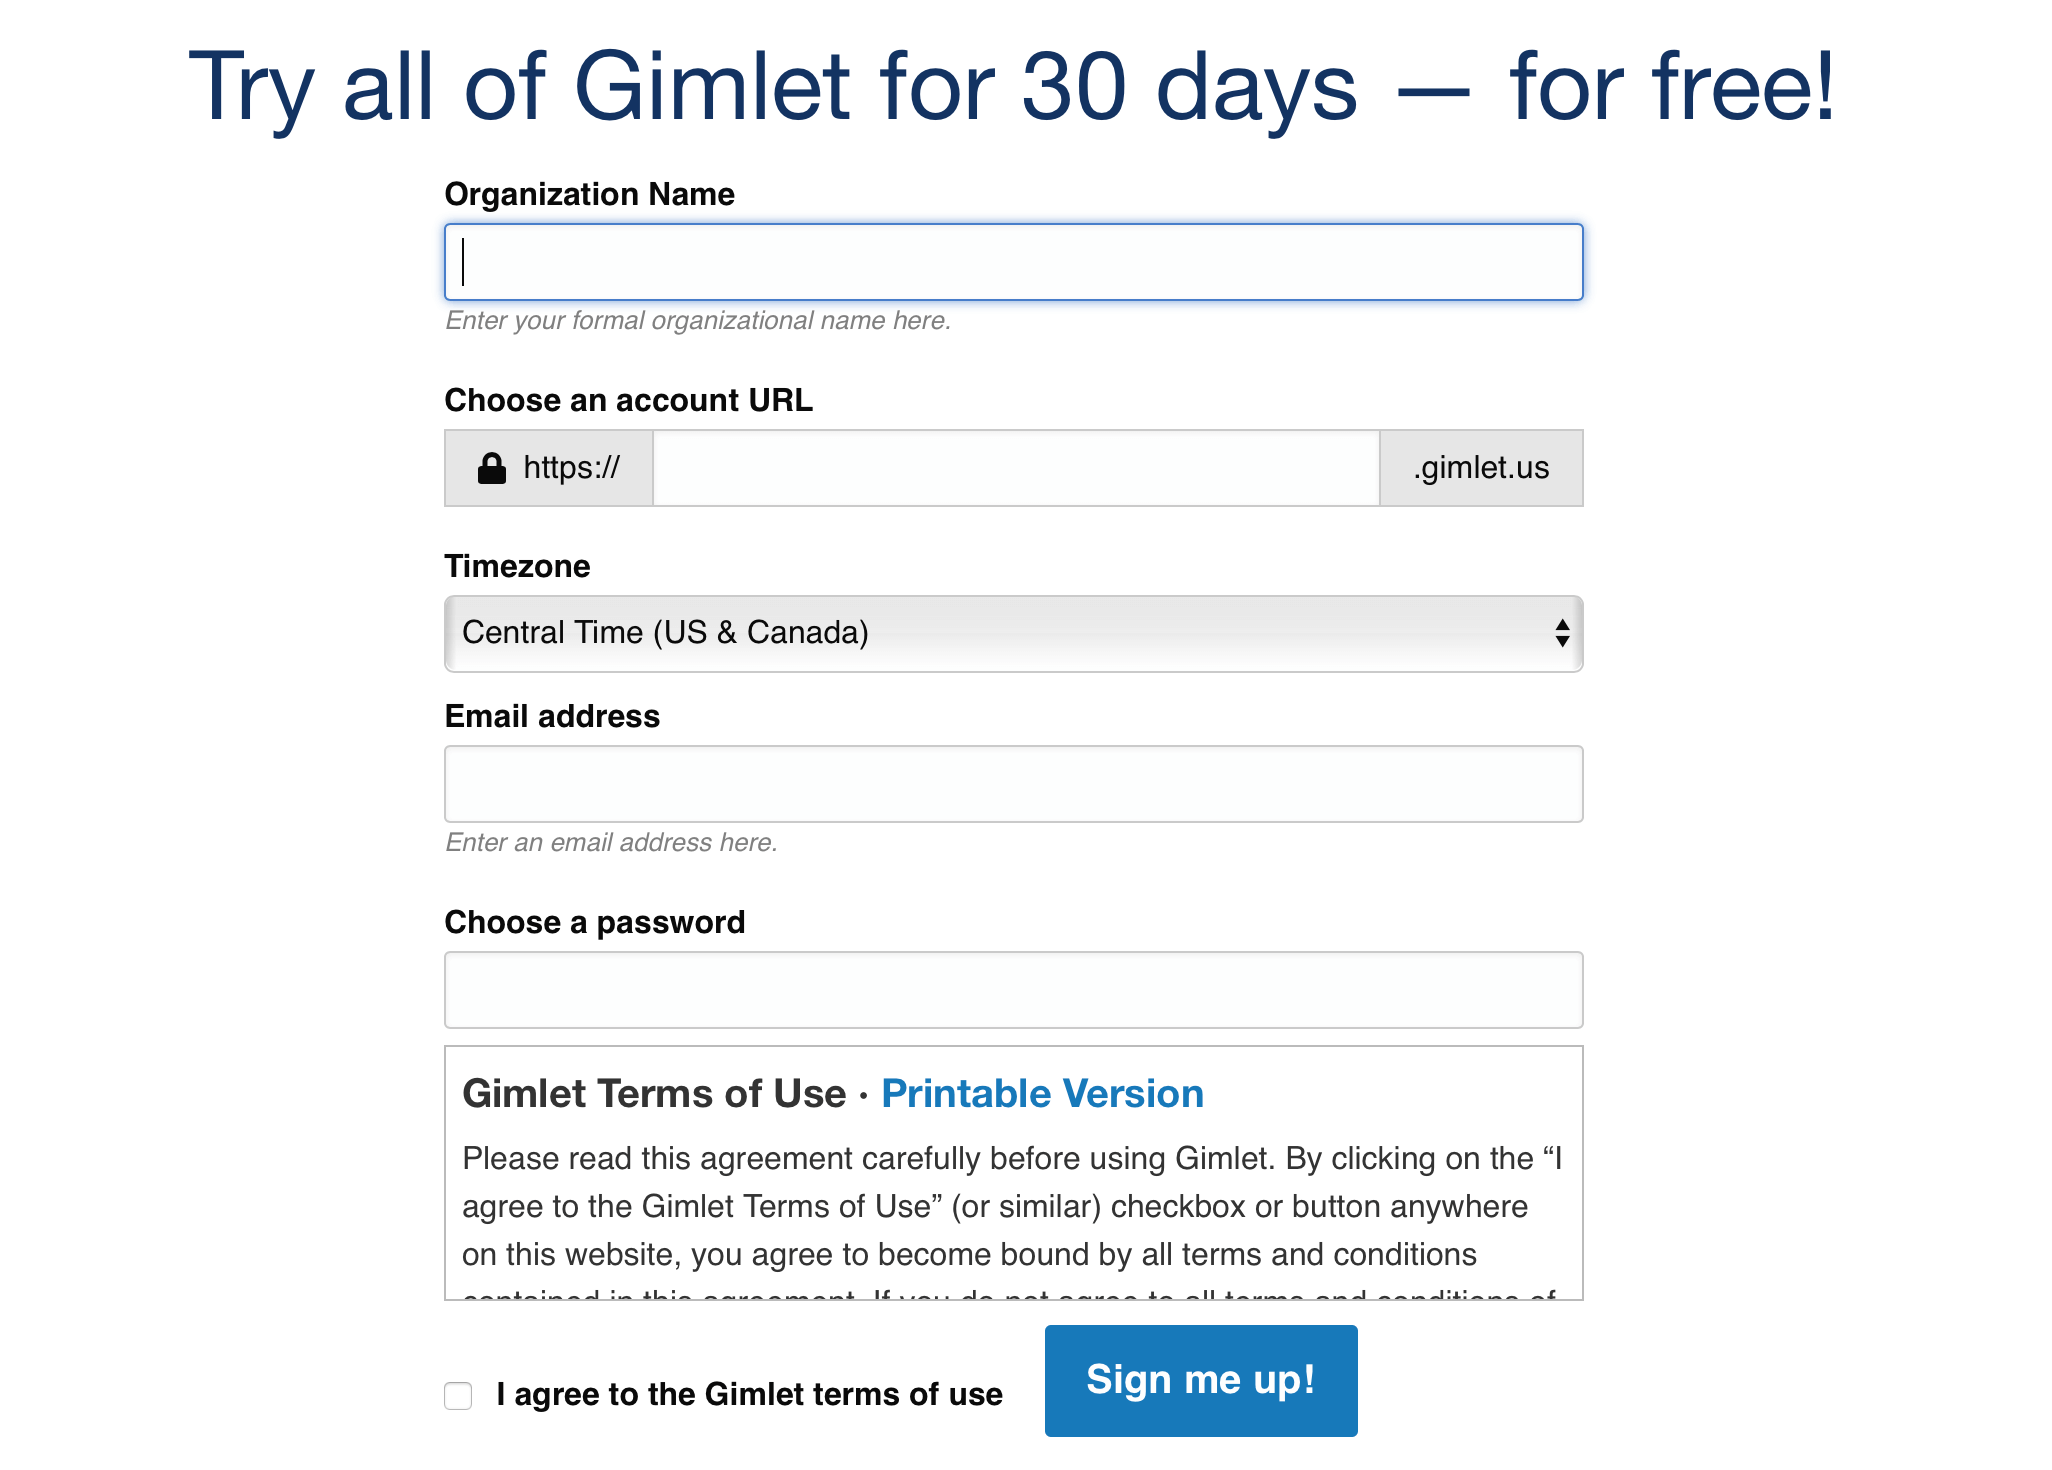 Gimlet - Sign up form